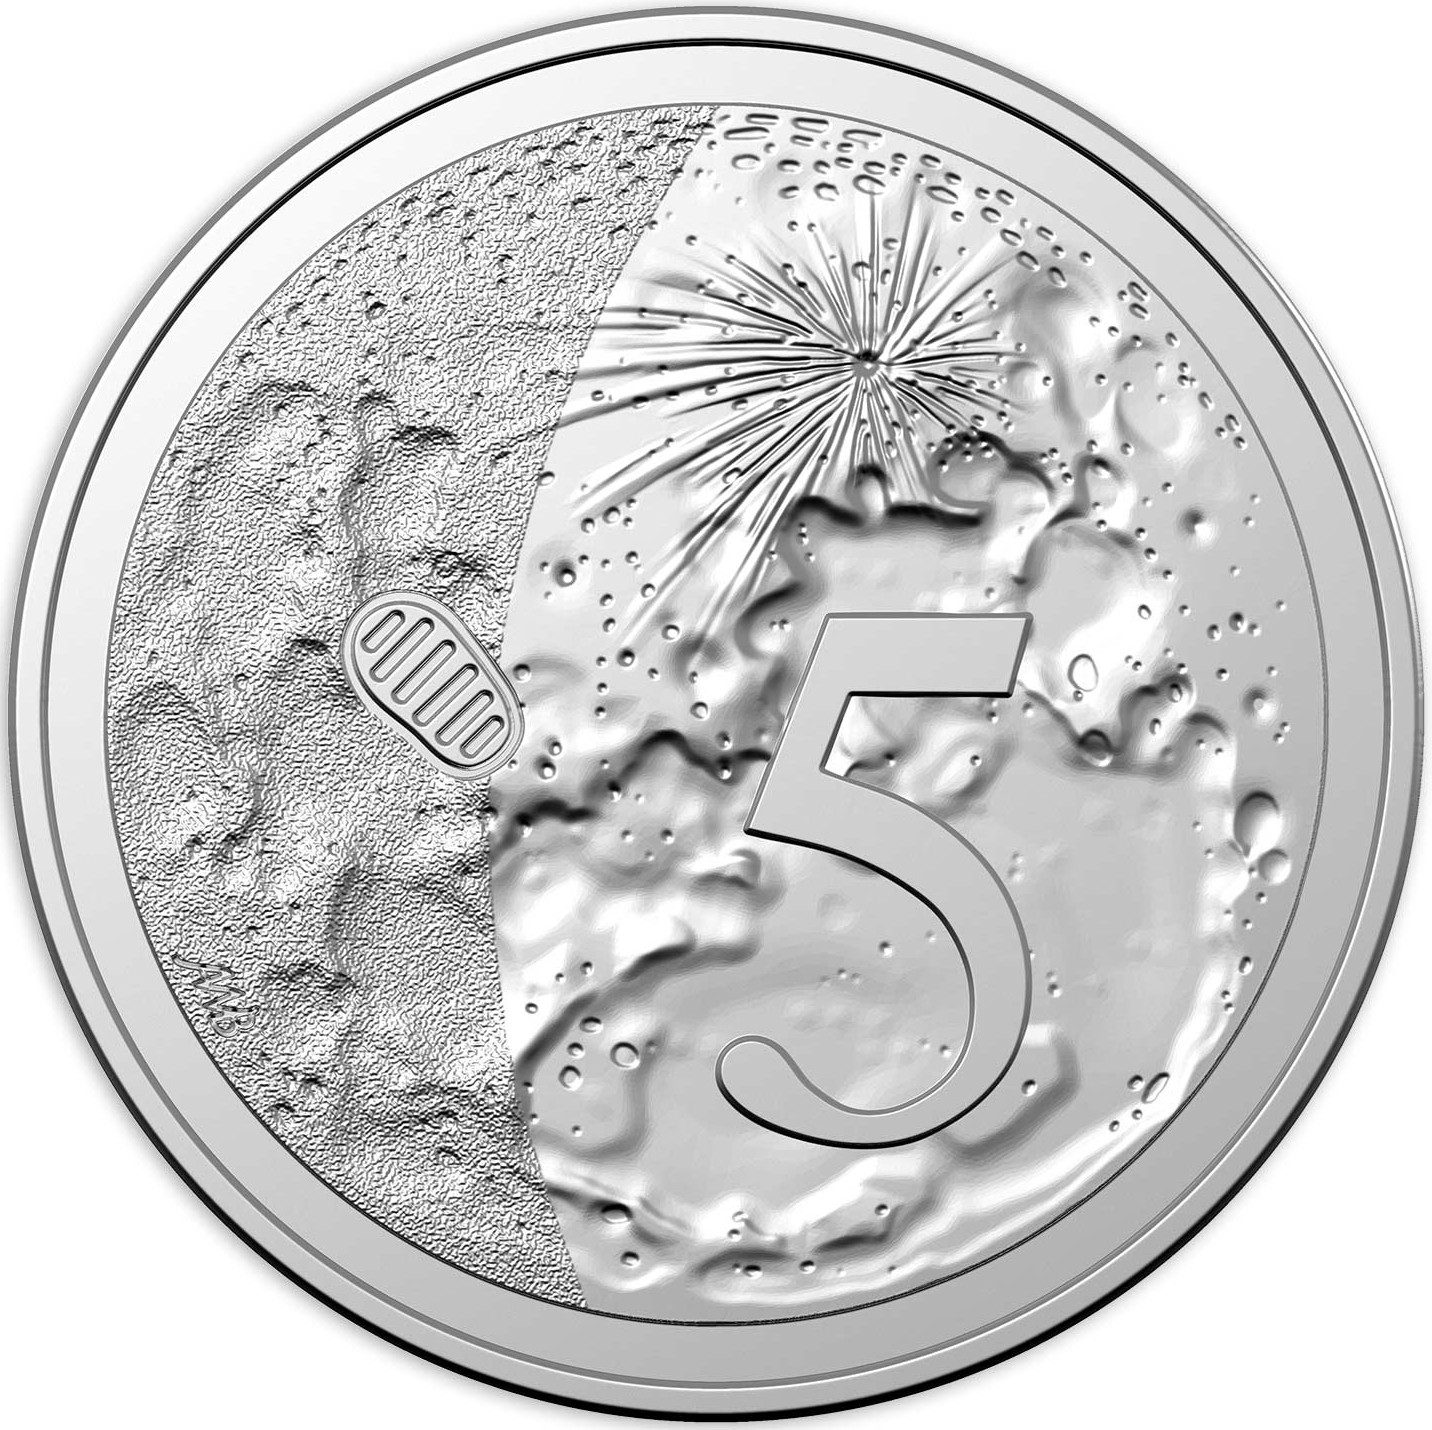 Five Cents 2019 Moon Landing (NCLT): Photo 50th Anniversary of the Moon Landing - 5 Cents